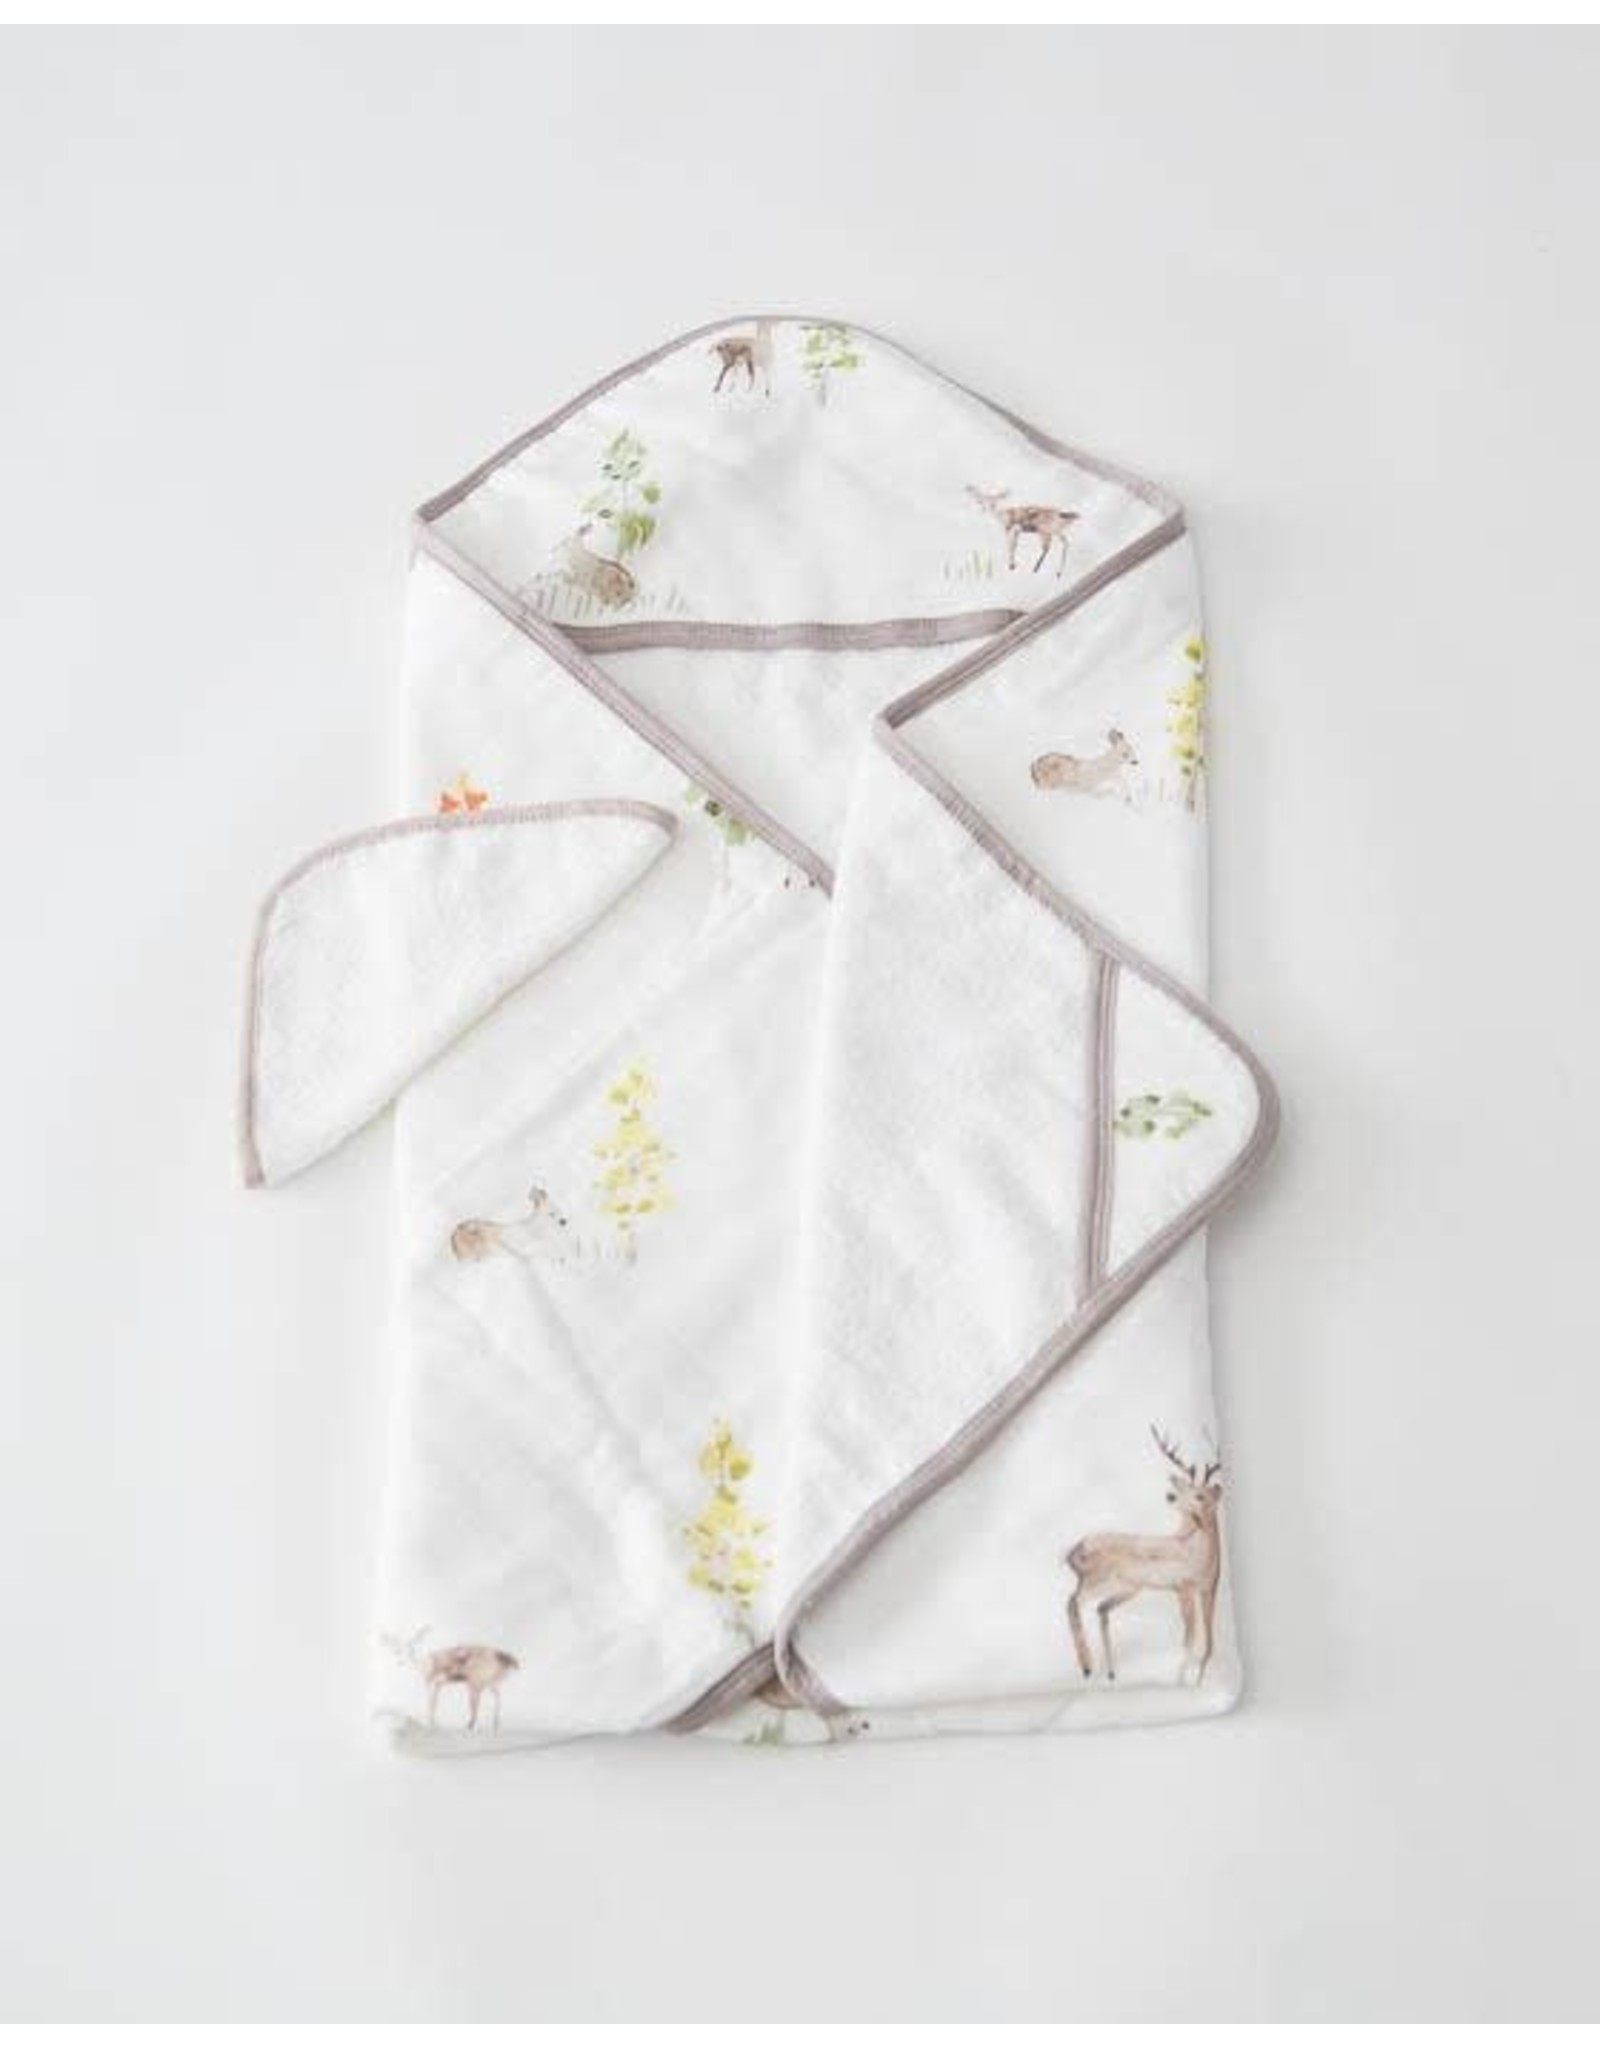 Hooded Towel Set Deer MW REG SOLD